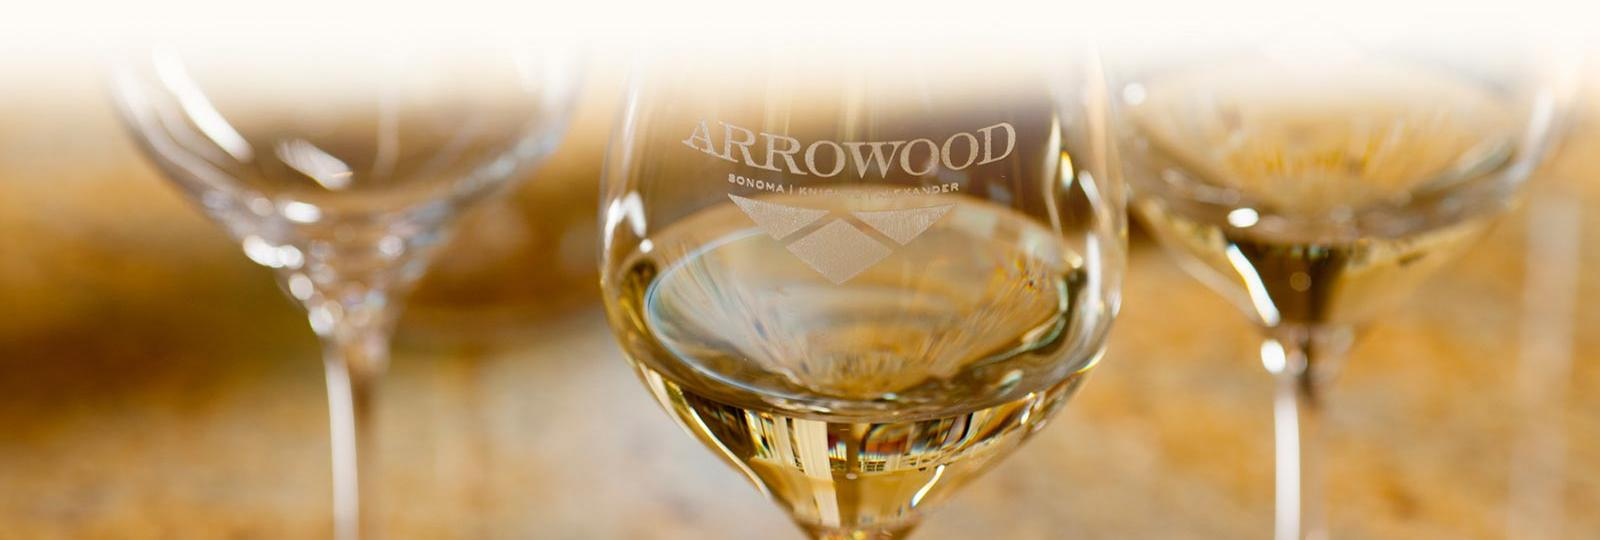 Arrowood white wines in glasses